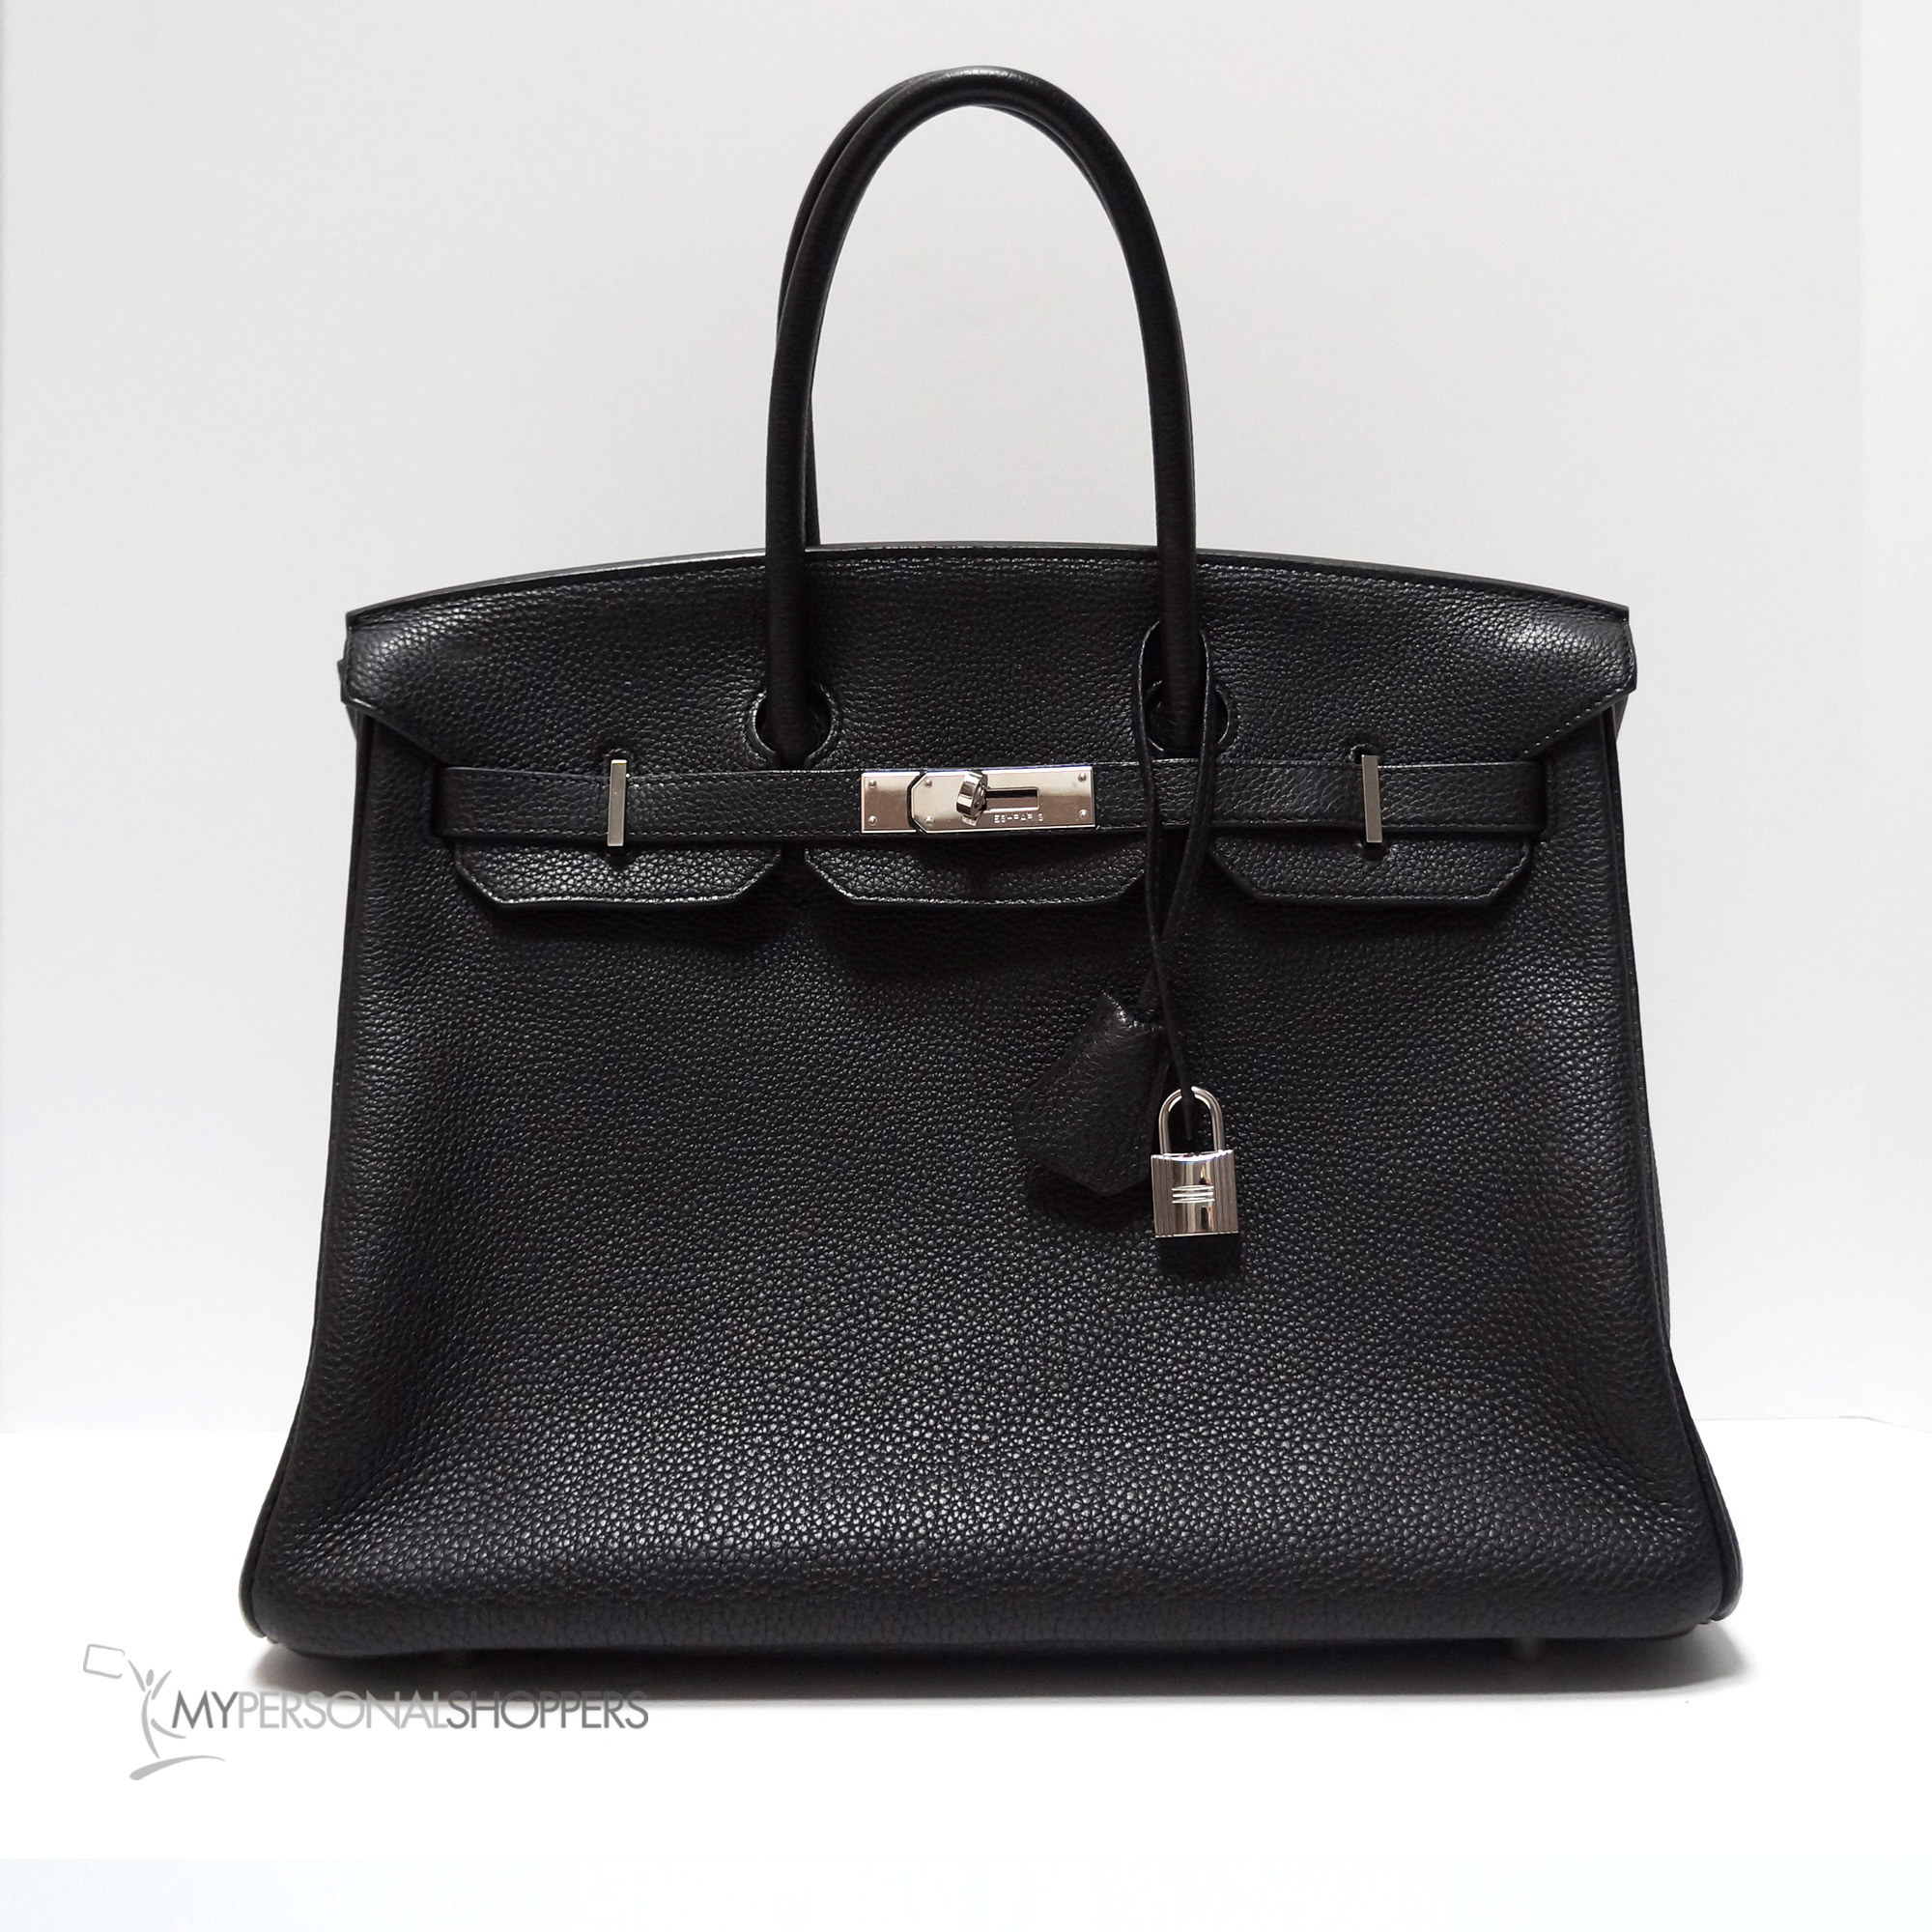 ffd74014c2c2 Hermes Black Togo Leather Palladium Hardware Birkin 35cm Bag